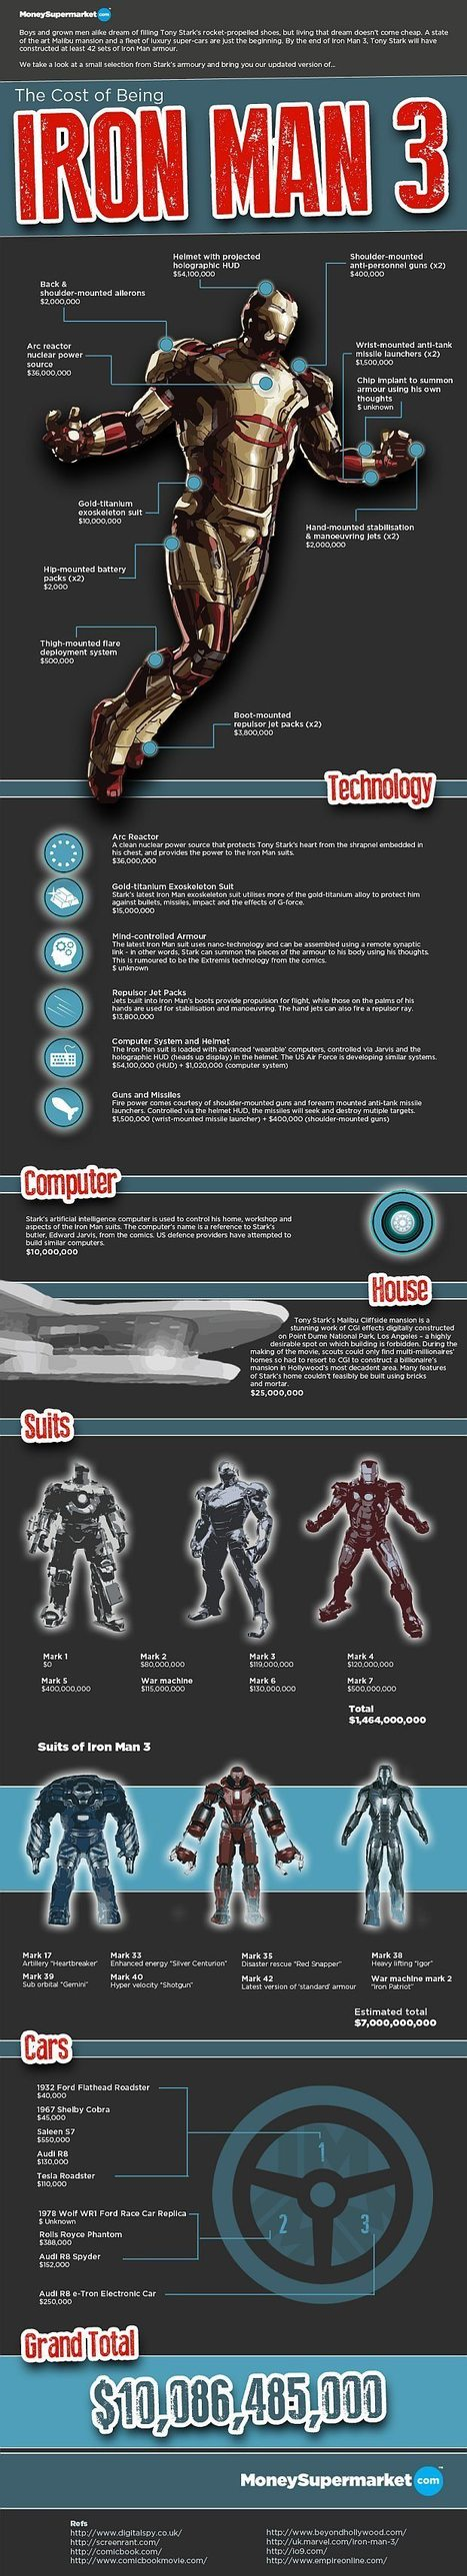 Infographic : Tony Stark fortune | rakarekodamadama | Scoop.it